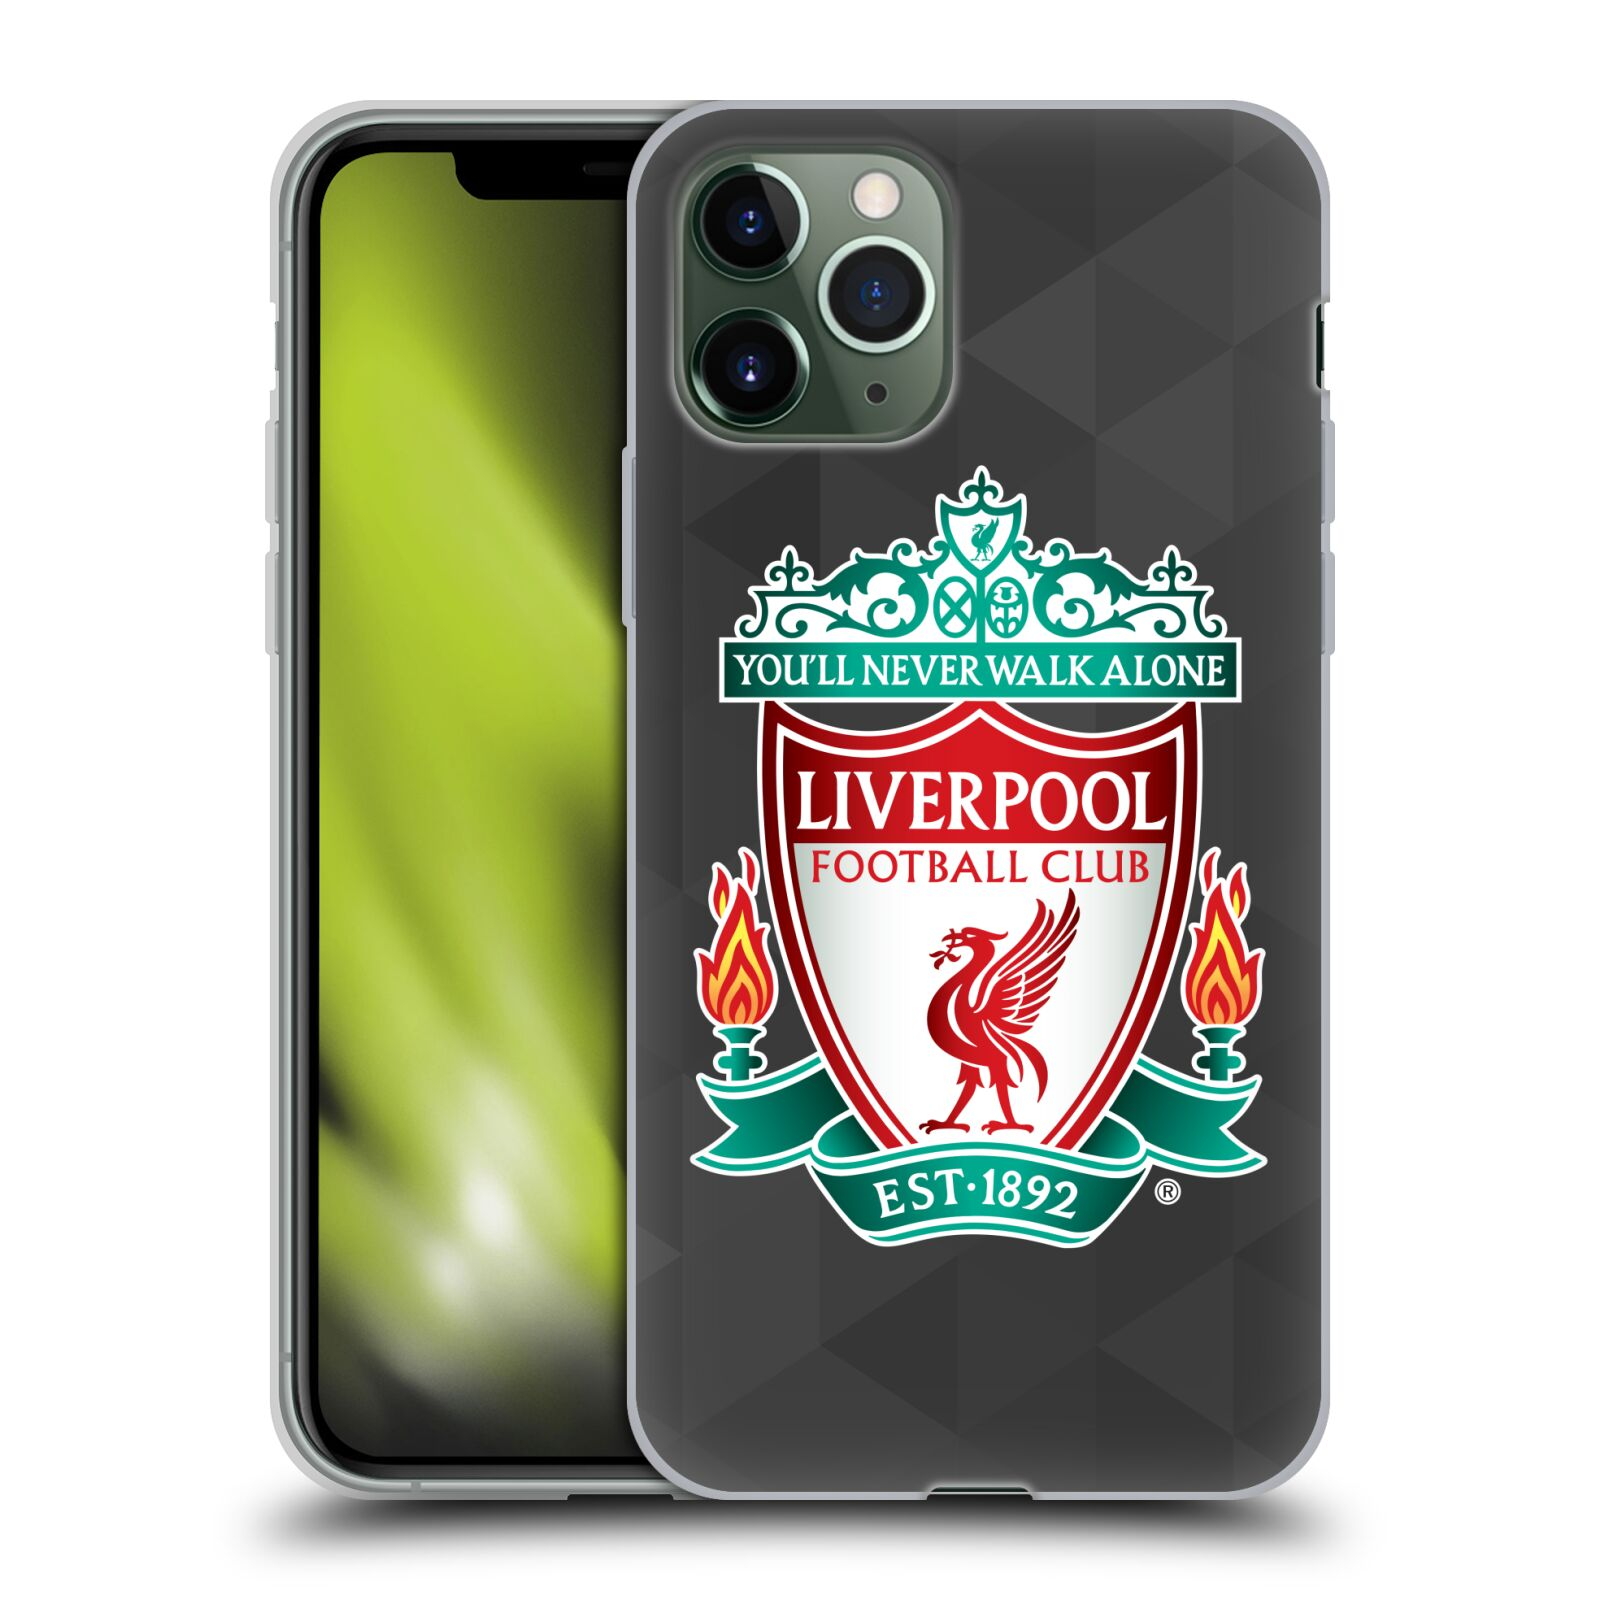 kožený obaly iphone x | Silikonové pouzdro na mobil Apple iPhone 11 Pro - Head Case - ZNAK LIVERPOOL FC OFFICIAL GEOMETRIC BLACK